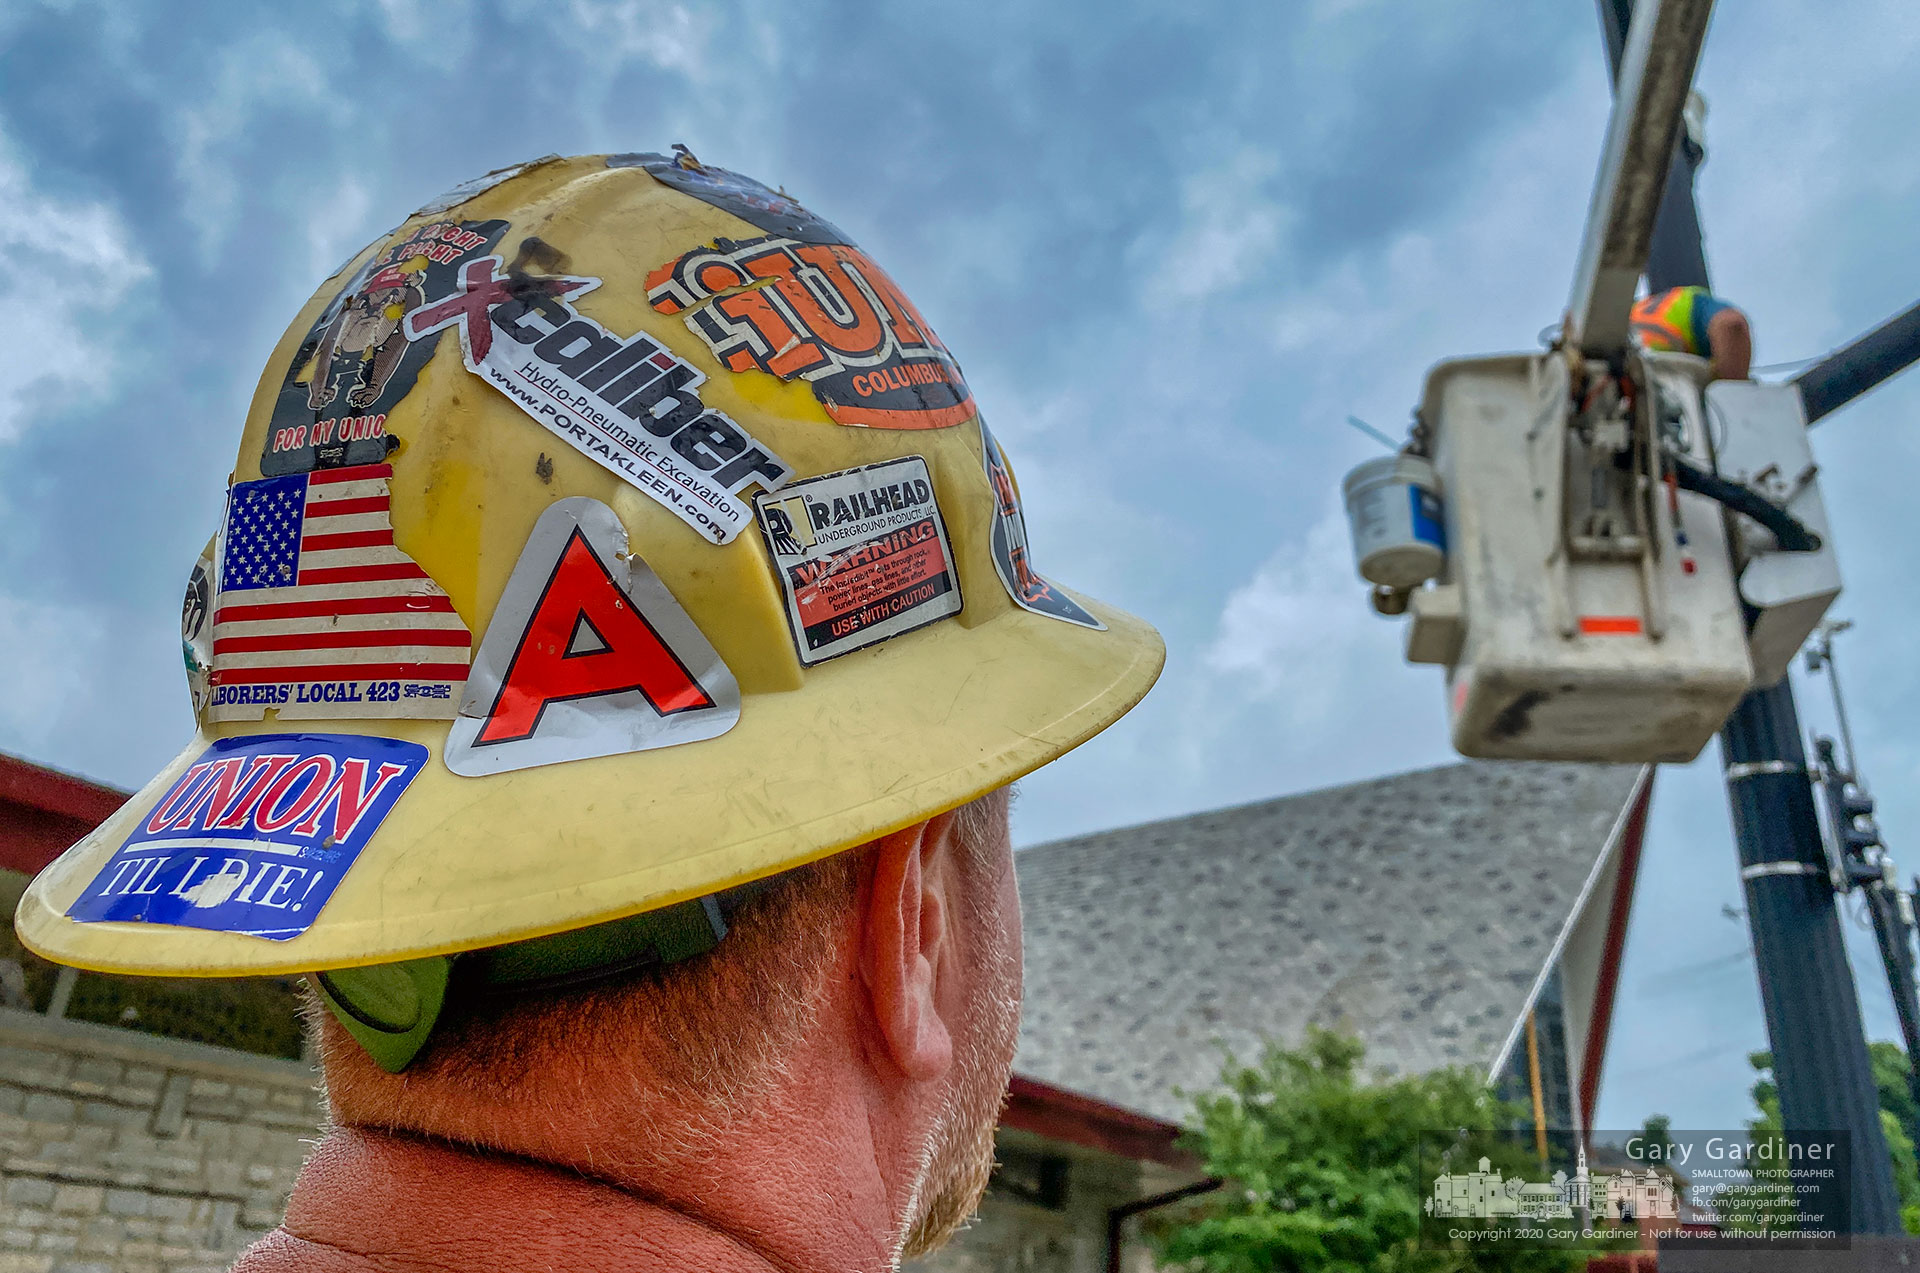 A construction worker's hardhat bears stickers emblematic of his job as part of the electric crew repairing streetlights and traffic signals in Uptown as part for the Uptown Improvement Project. My Final Photo for July 23, 2020.